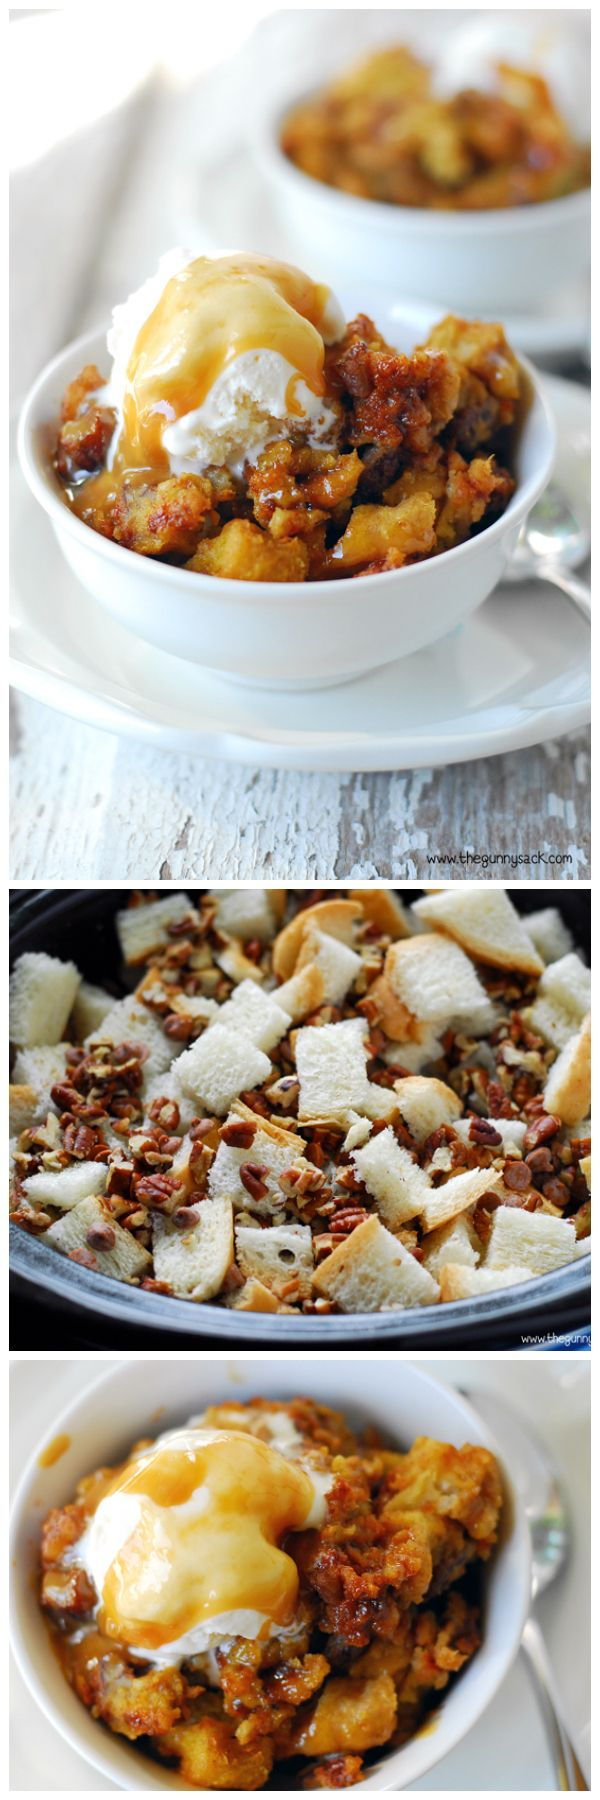 Slow Cooker Pumpkin Pecan Bread Pudding - An easy pumpkin dessert recipe for fall!